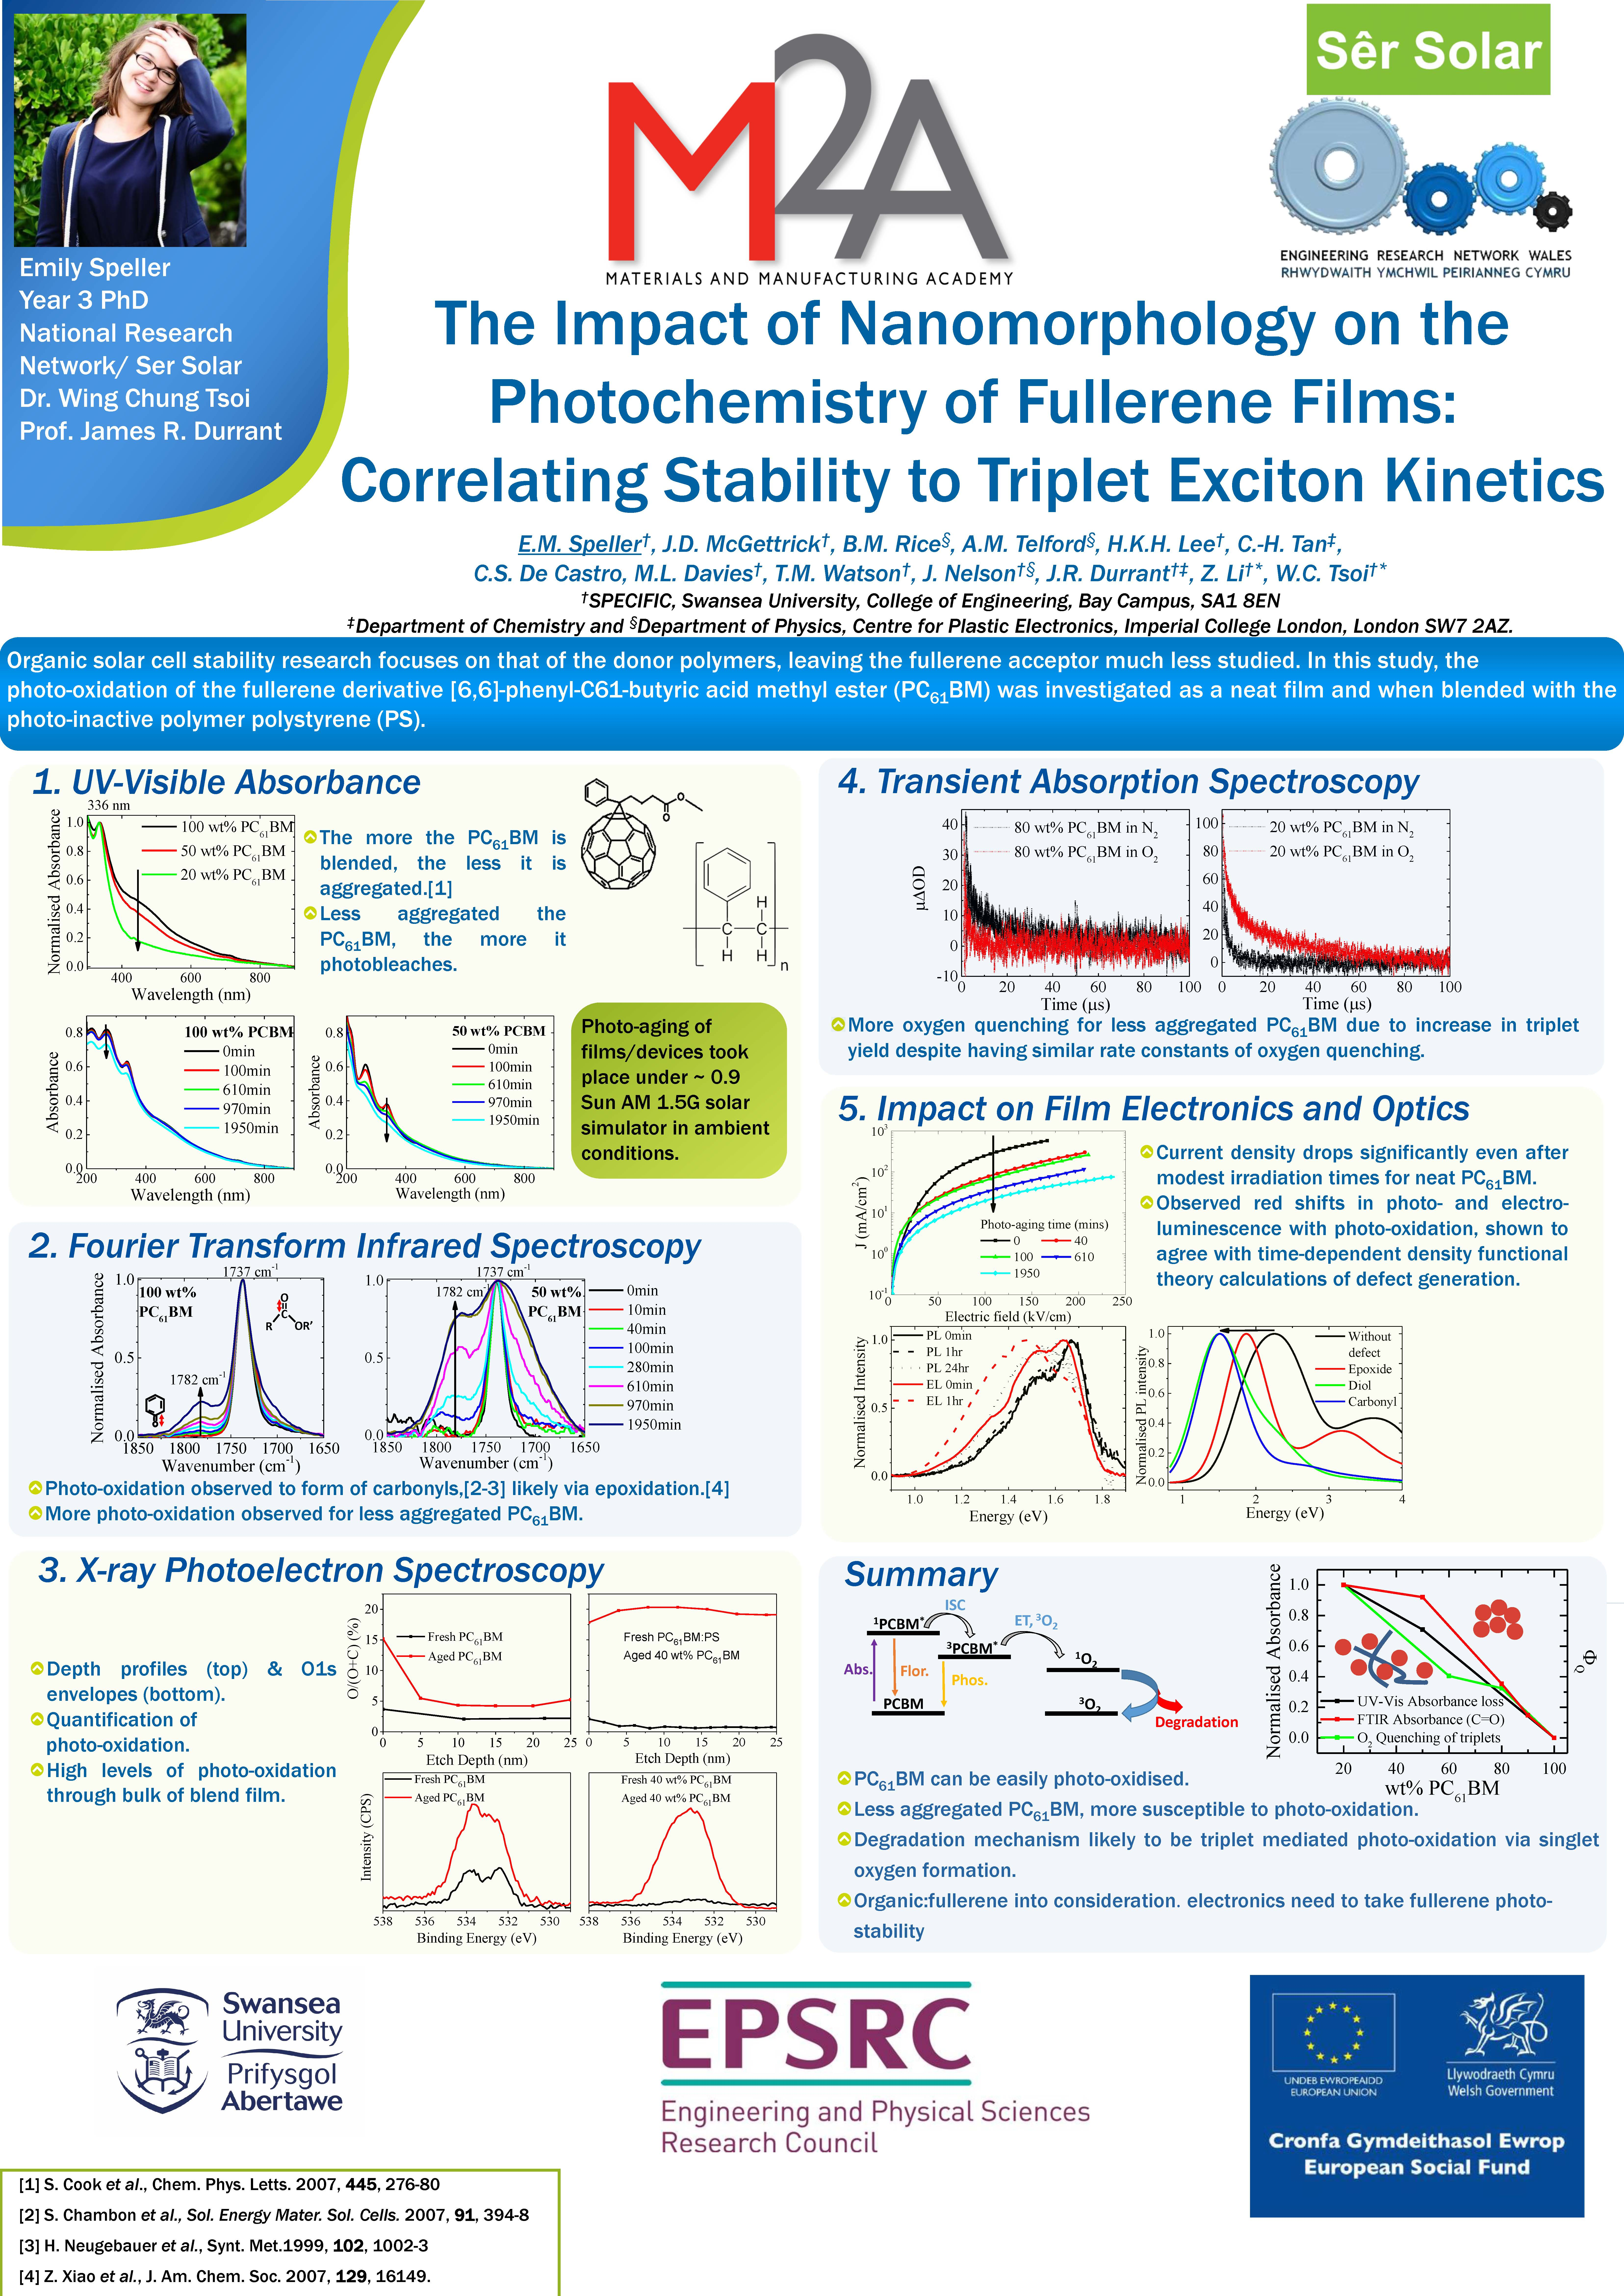 The Impact of Nanomorphology on the Photochemistry of Fullerene Films: Correlating Stability to Triplet Exciton Kinetics